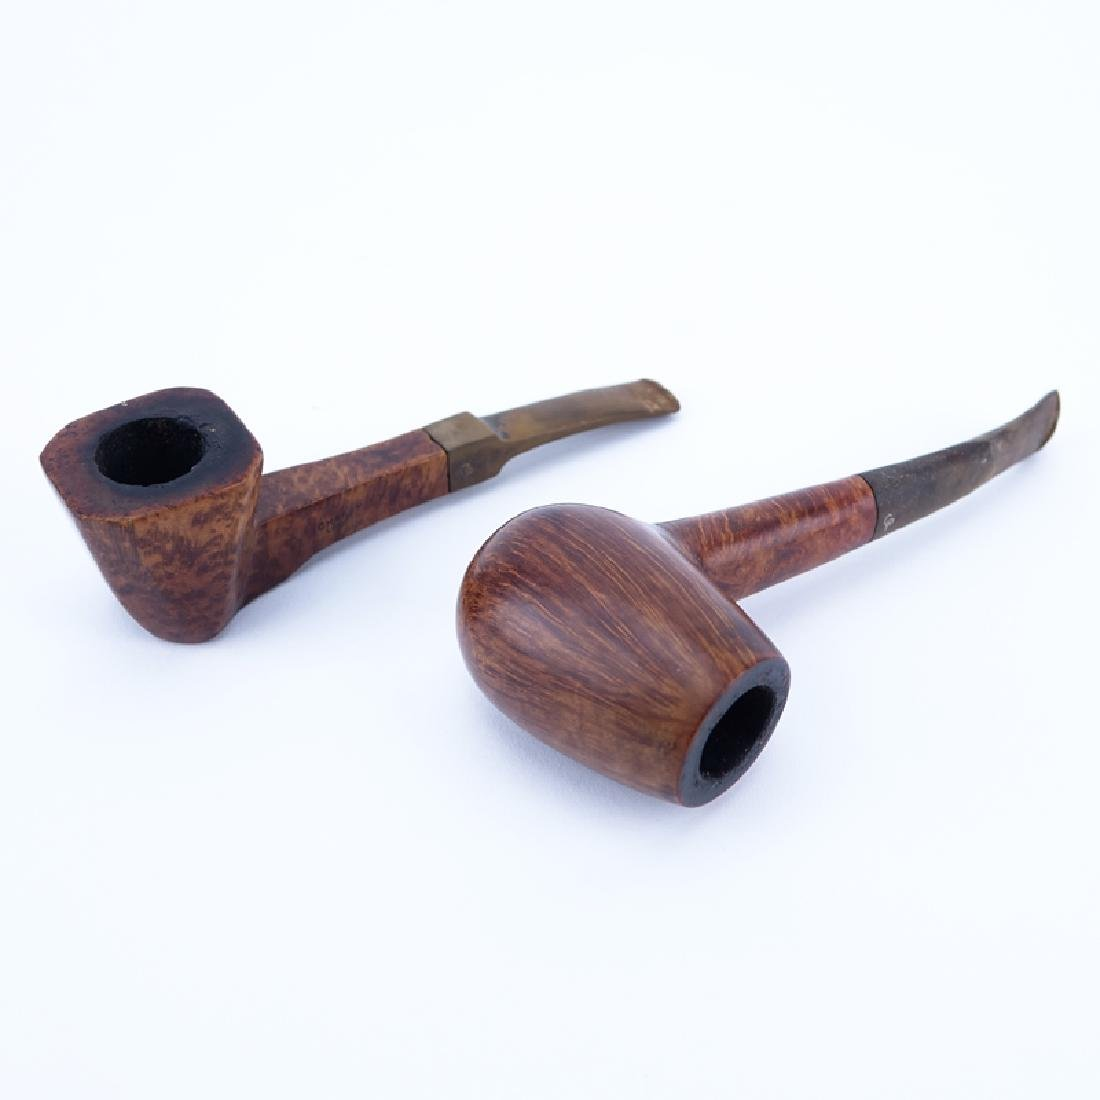 Grouping of Two (2) Charatan's Make High Quality Wood